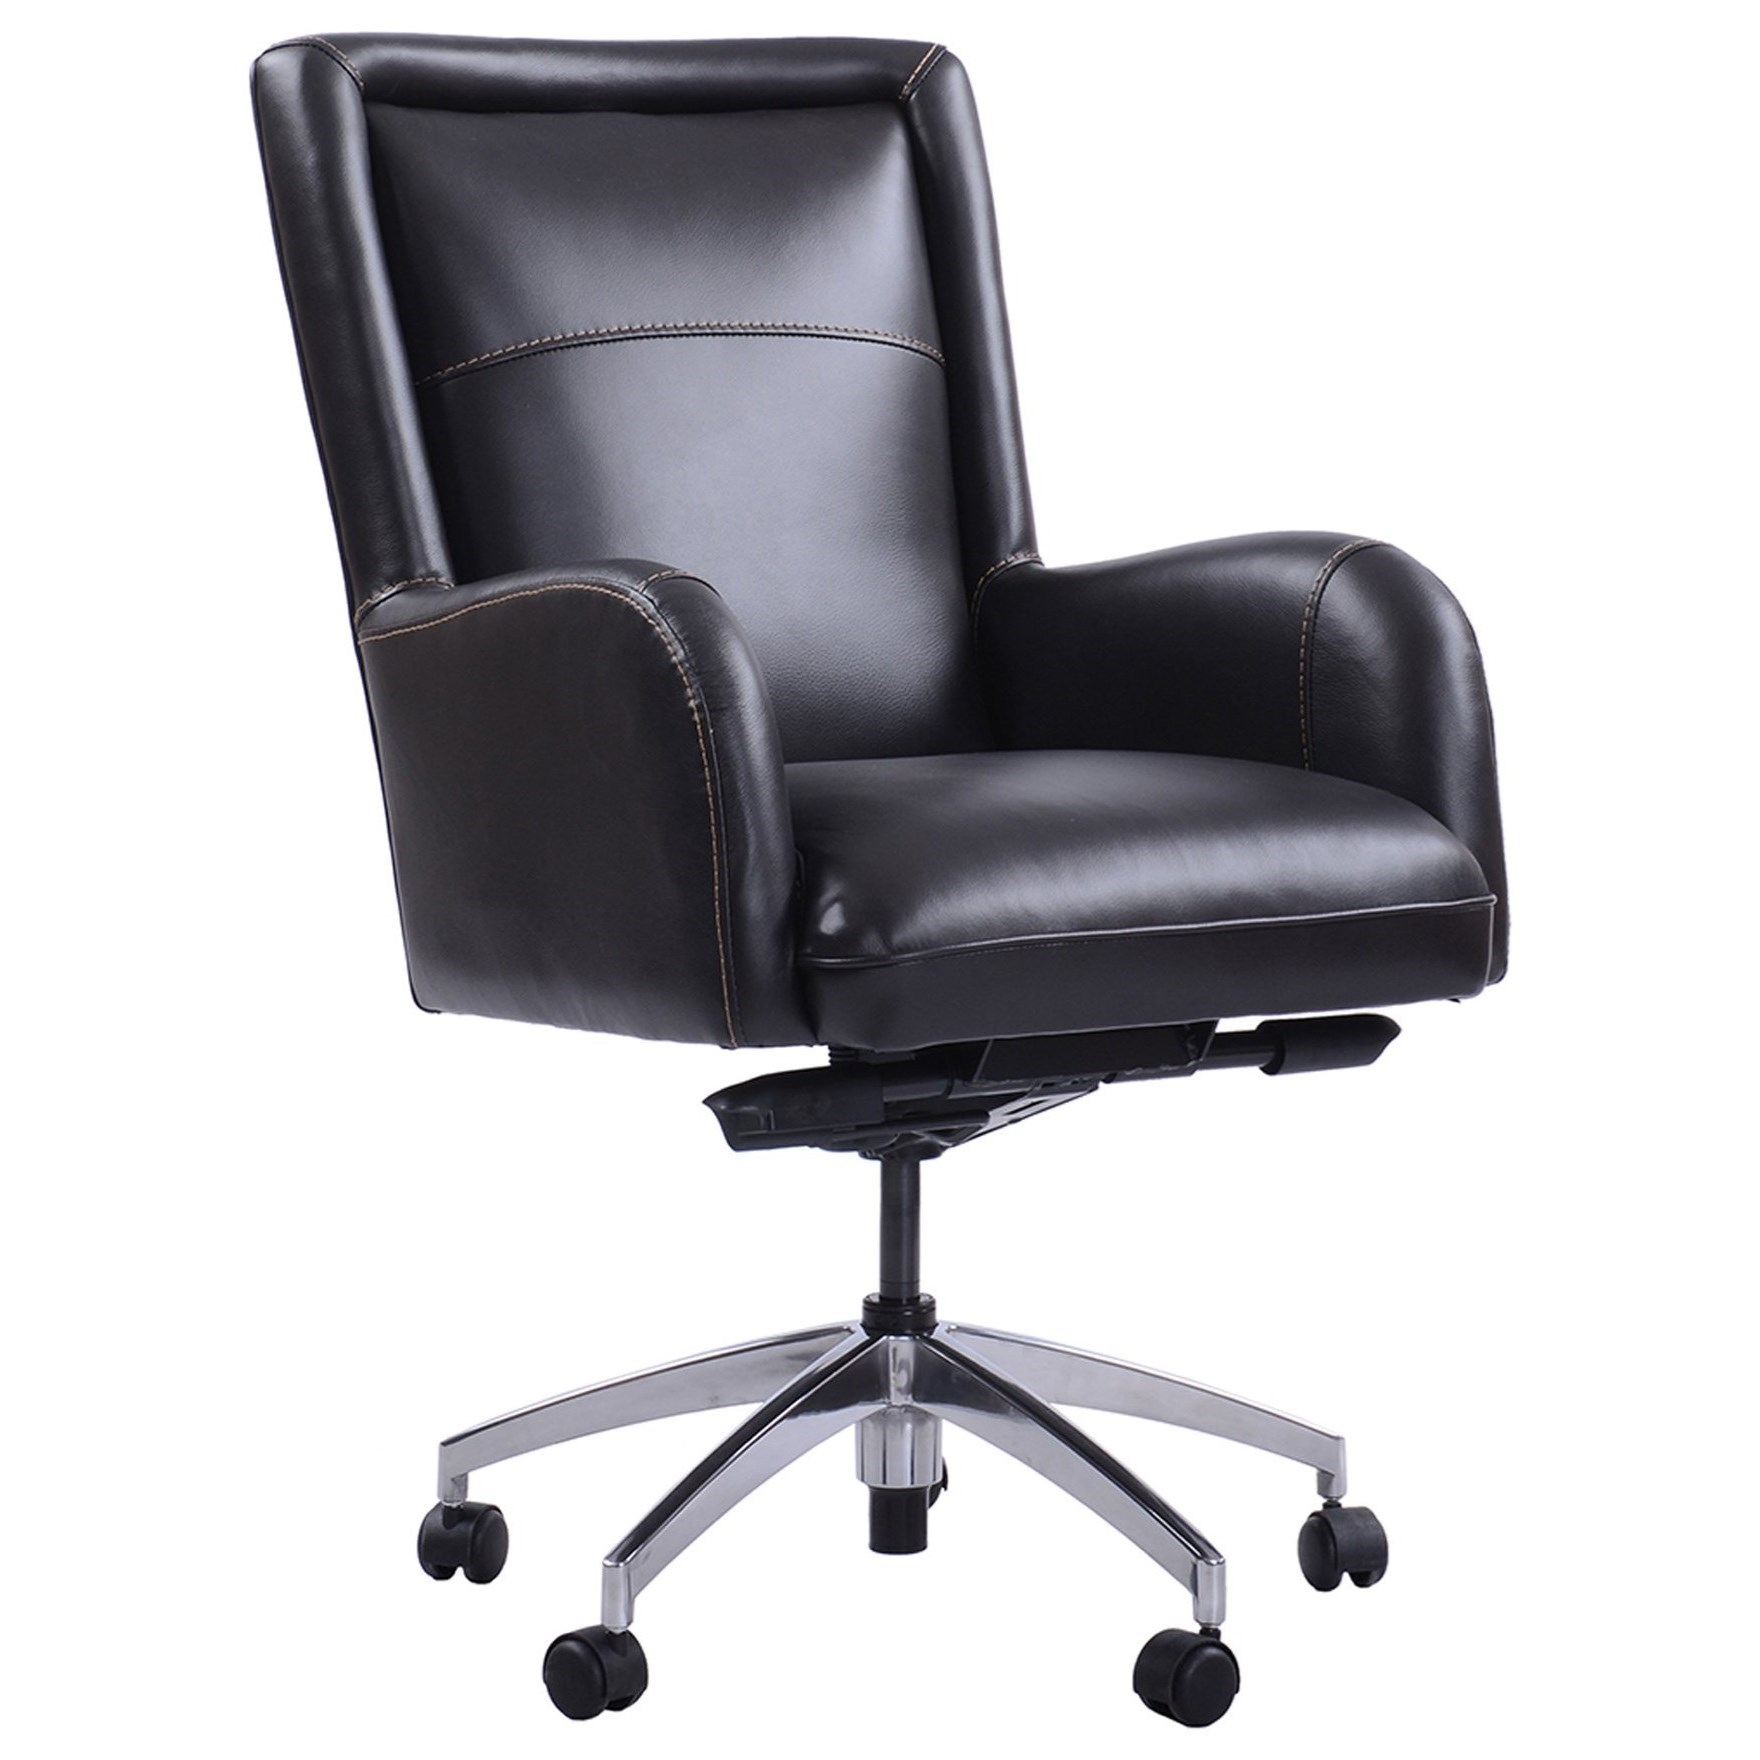 Desk Chairs Desk Chair by Parker Living at Miller Waldrop Furniture and Decor